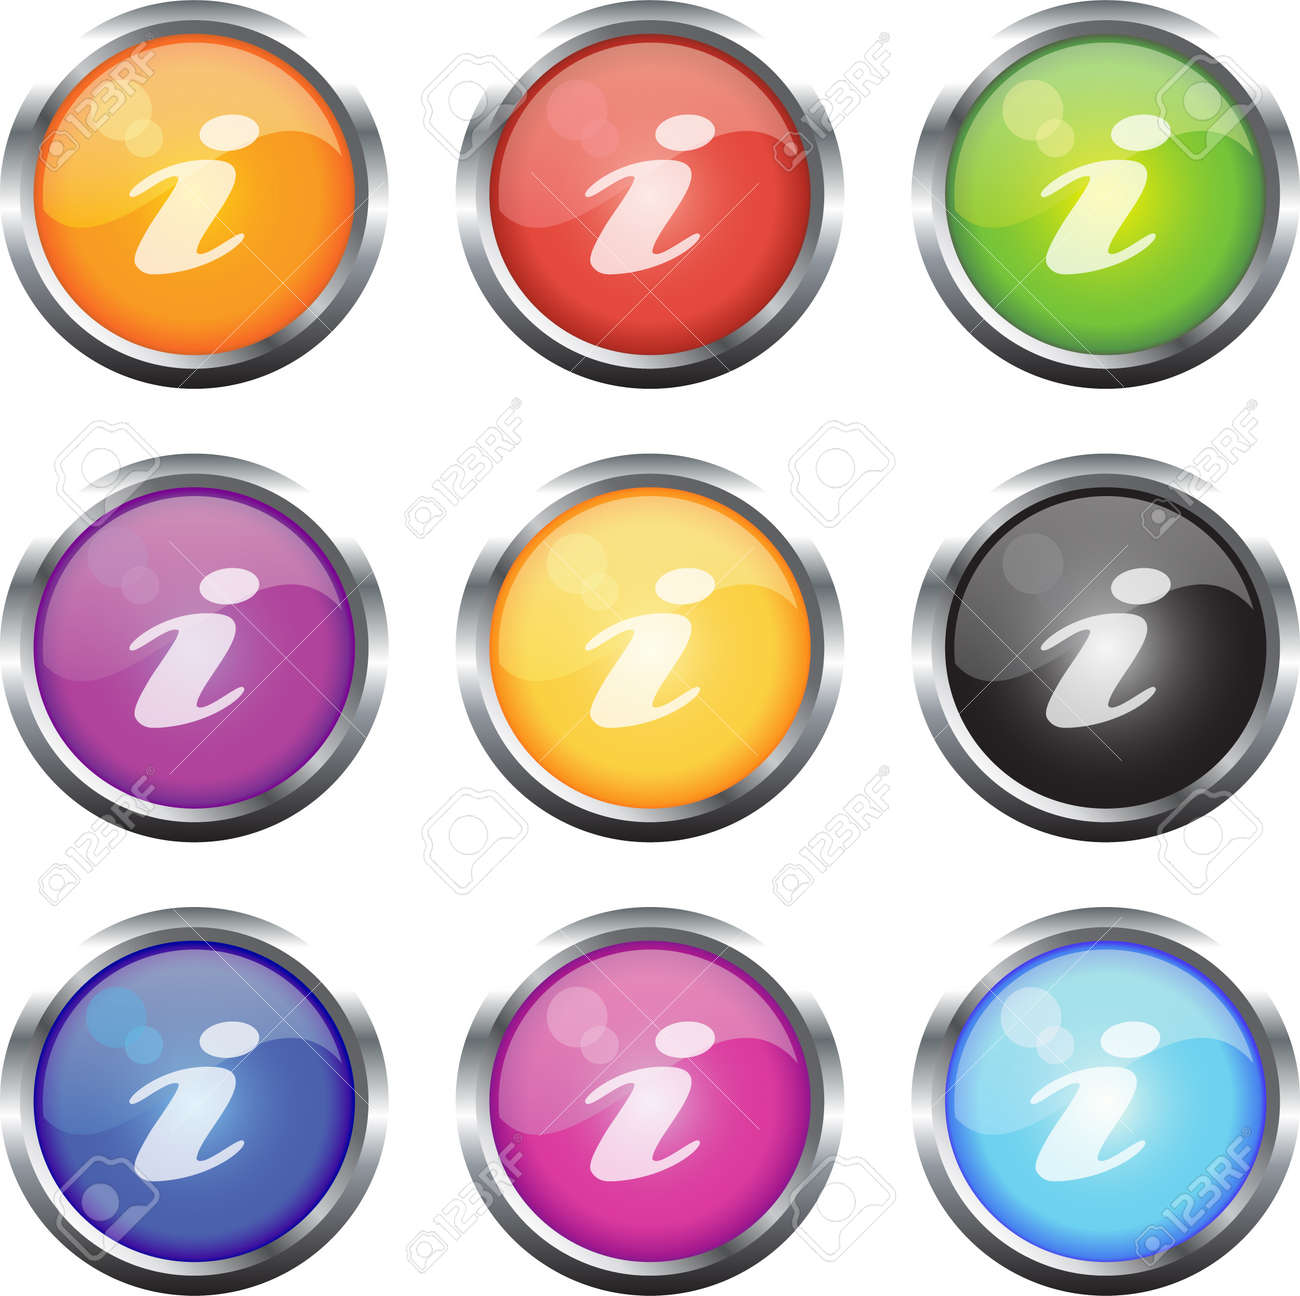 A Colourful Set of Informaton Icons Stock Vector - 3948136